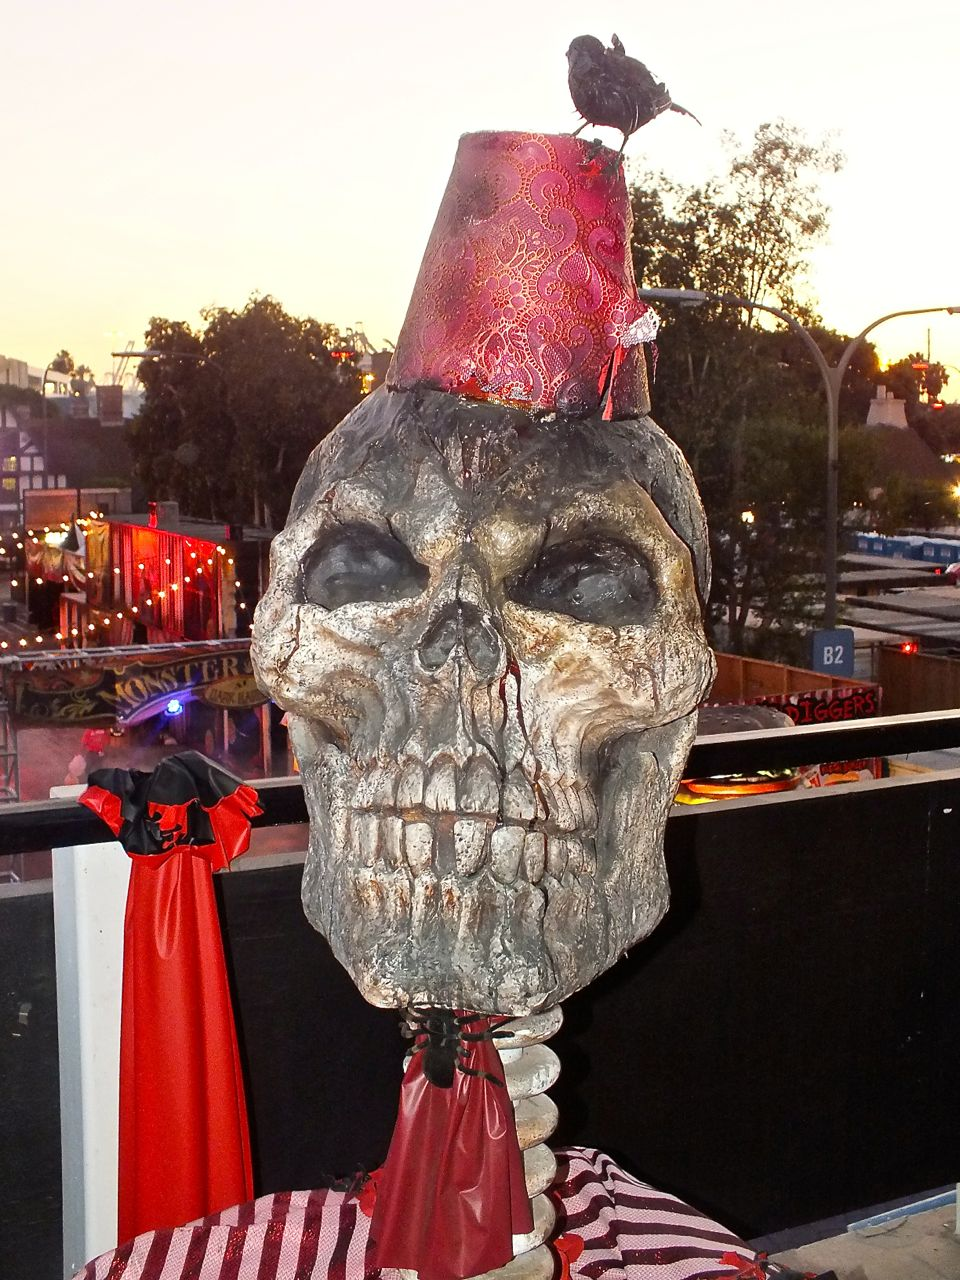 Dark Harbor Opens Today at the Queen Mary, Get Ready for Fun, Fright, Music and Some 'Spirited' Drinking